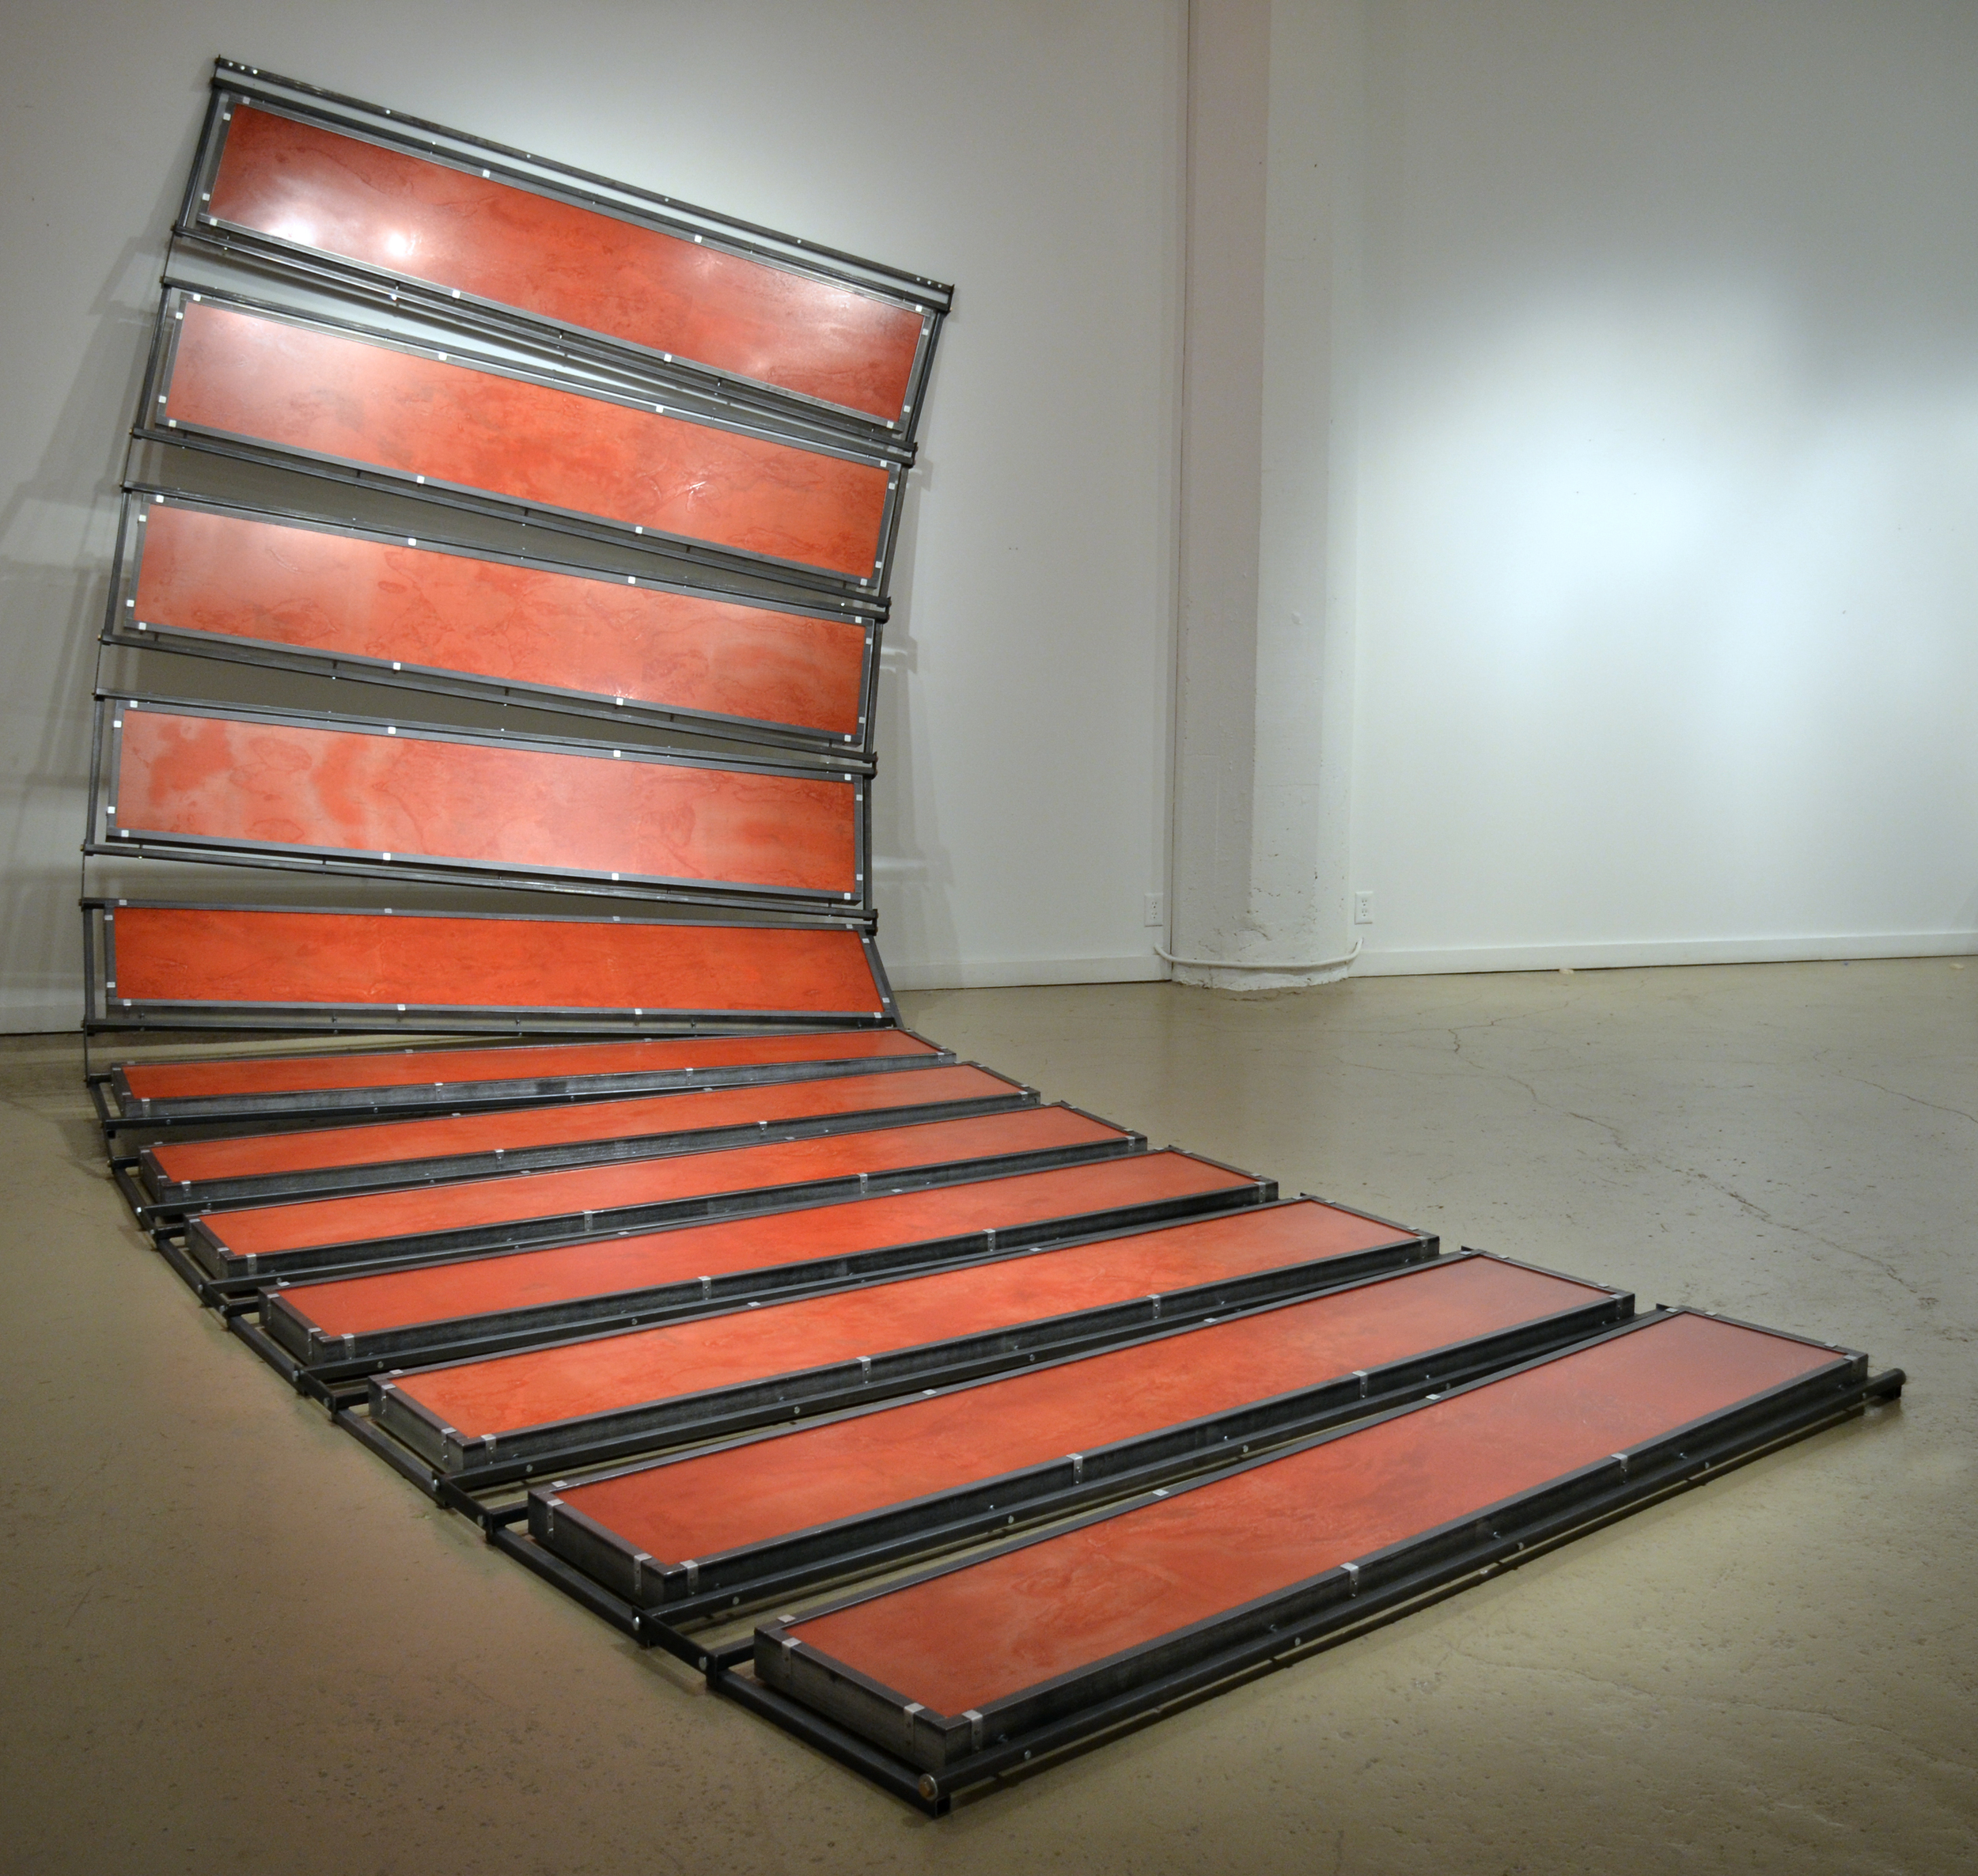 """Flow    woodcut printed on plastic sheets, mounted on 12 prepared boxes with maps, affixed into steel structures, mounted on a wall as to cascade onto the floor. plastic, ink, maps, wood, steel 120"""" x 180"""" x 120"""" (10' x 15' x 10')   2012   Flow  is a transitional piece for me.   I am beginning to use the physical structure of the work as an aesthetic element.   How the sculpture is put together and the function of each of the varied materials used is plane to see (This also can be said about  Basin ).   I enjoy letting the viewer explore the creative history of this sculpture."""